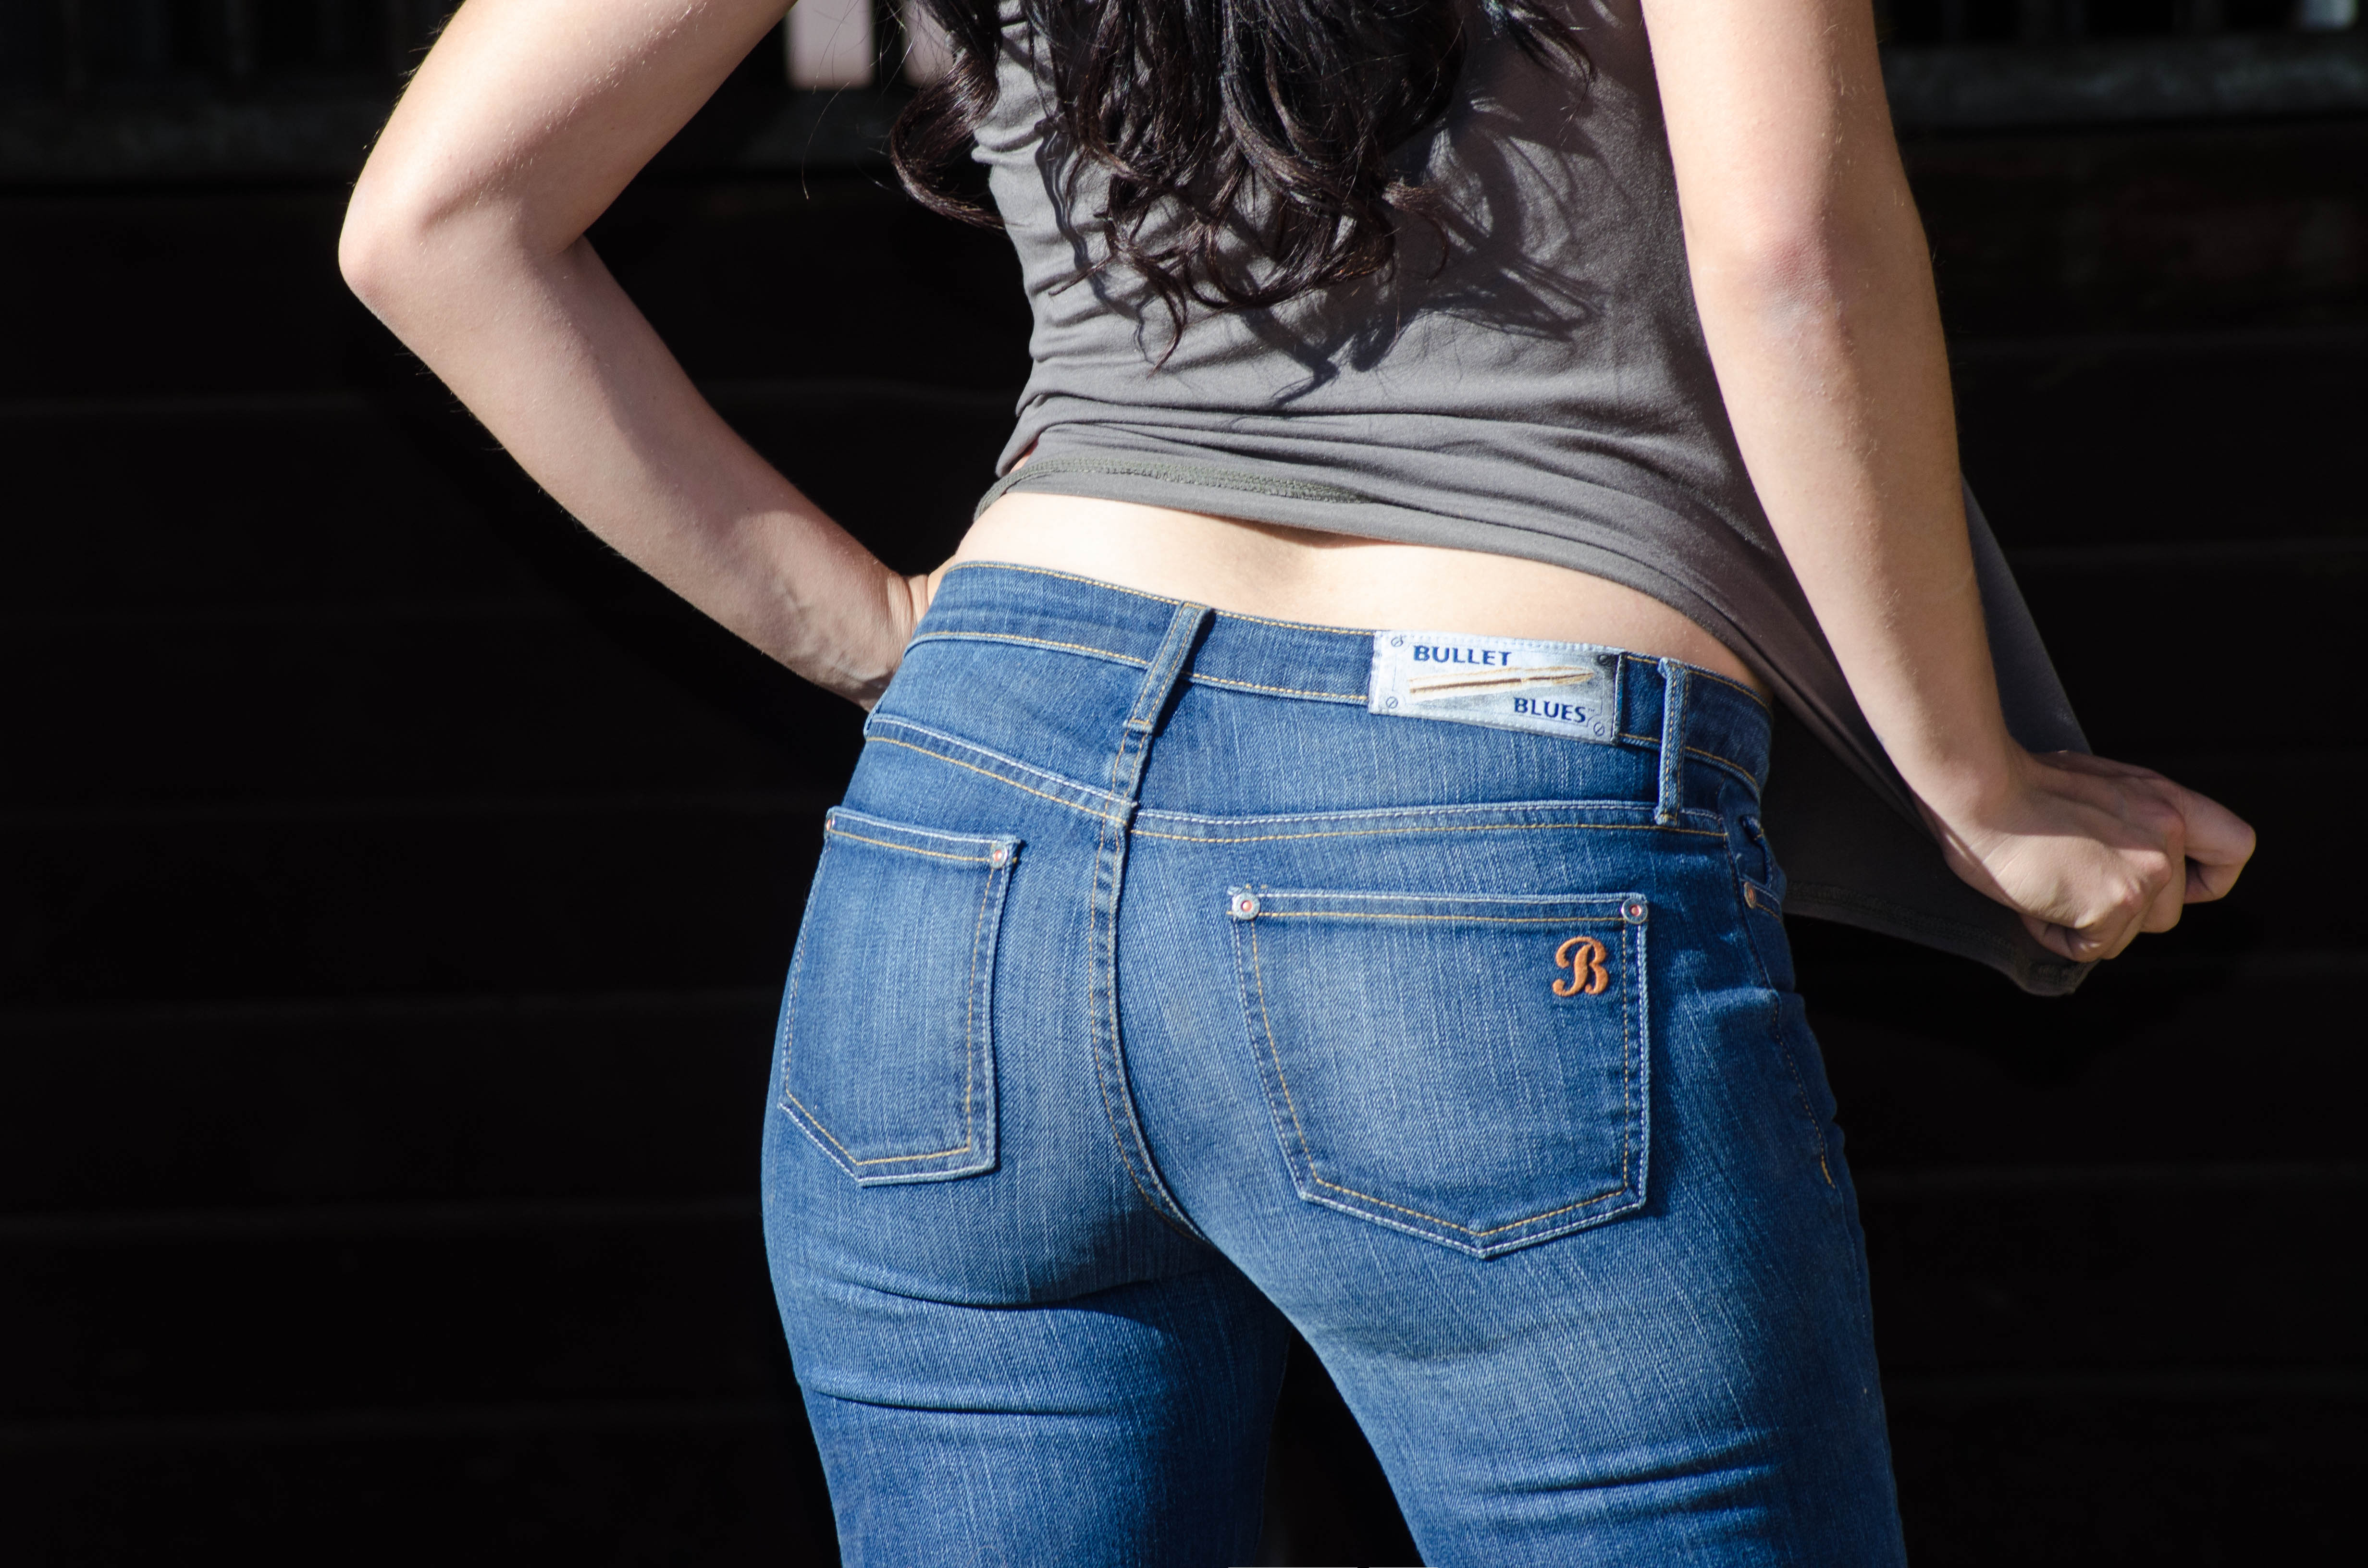 You pay only for the jeans - free shipping of custom jeans anywhere in the world. Made to measure jeans in USA, UK, Europe, Australia, Germany, France, Netherlands, Saudi Arabia, Dubai and all over the world free of shipping.